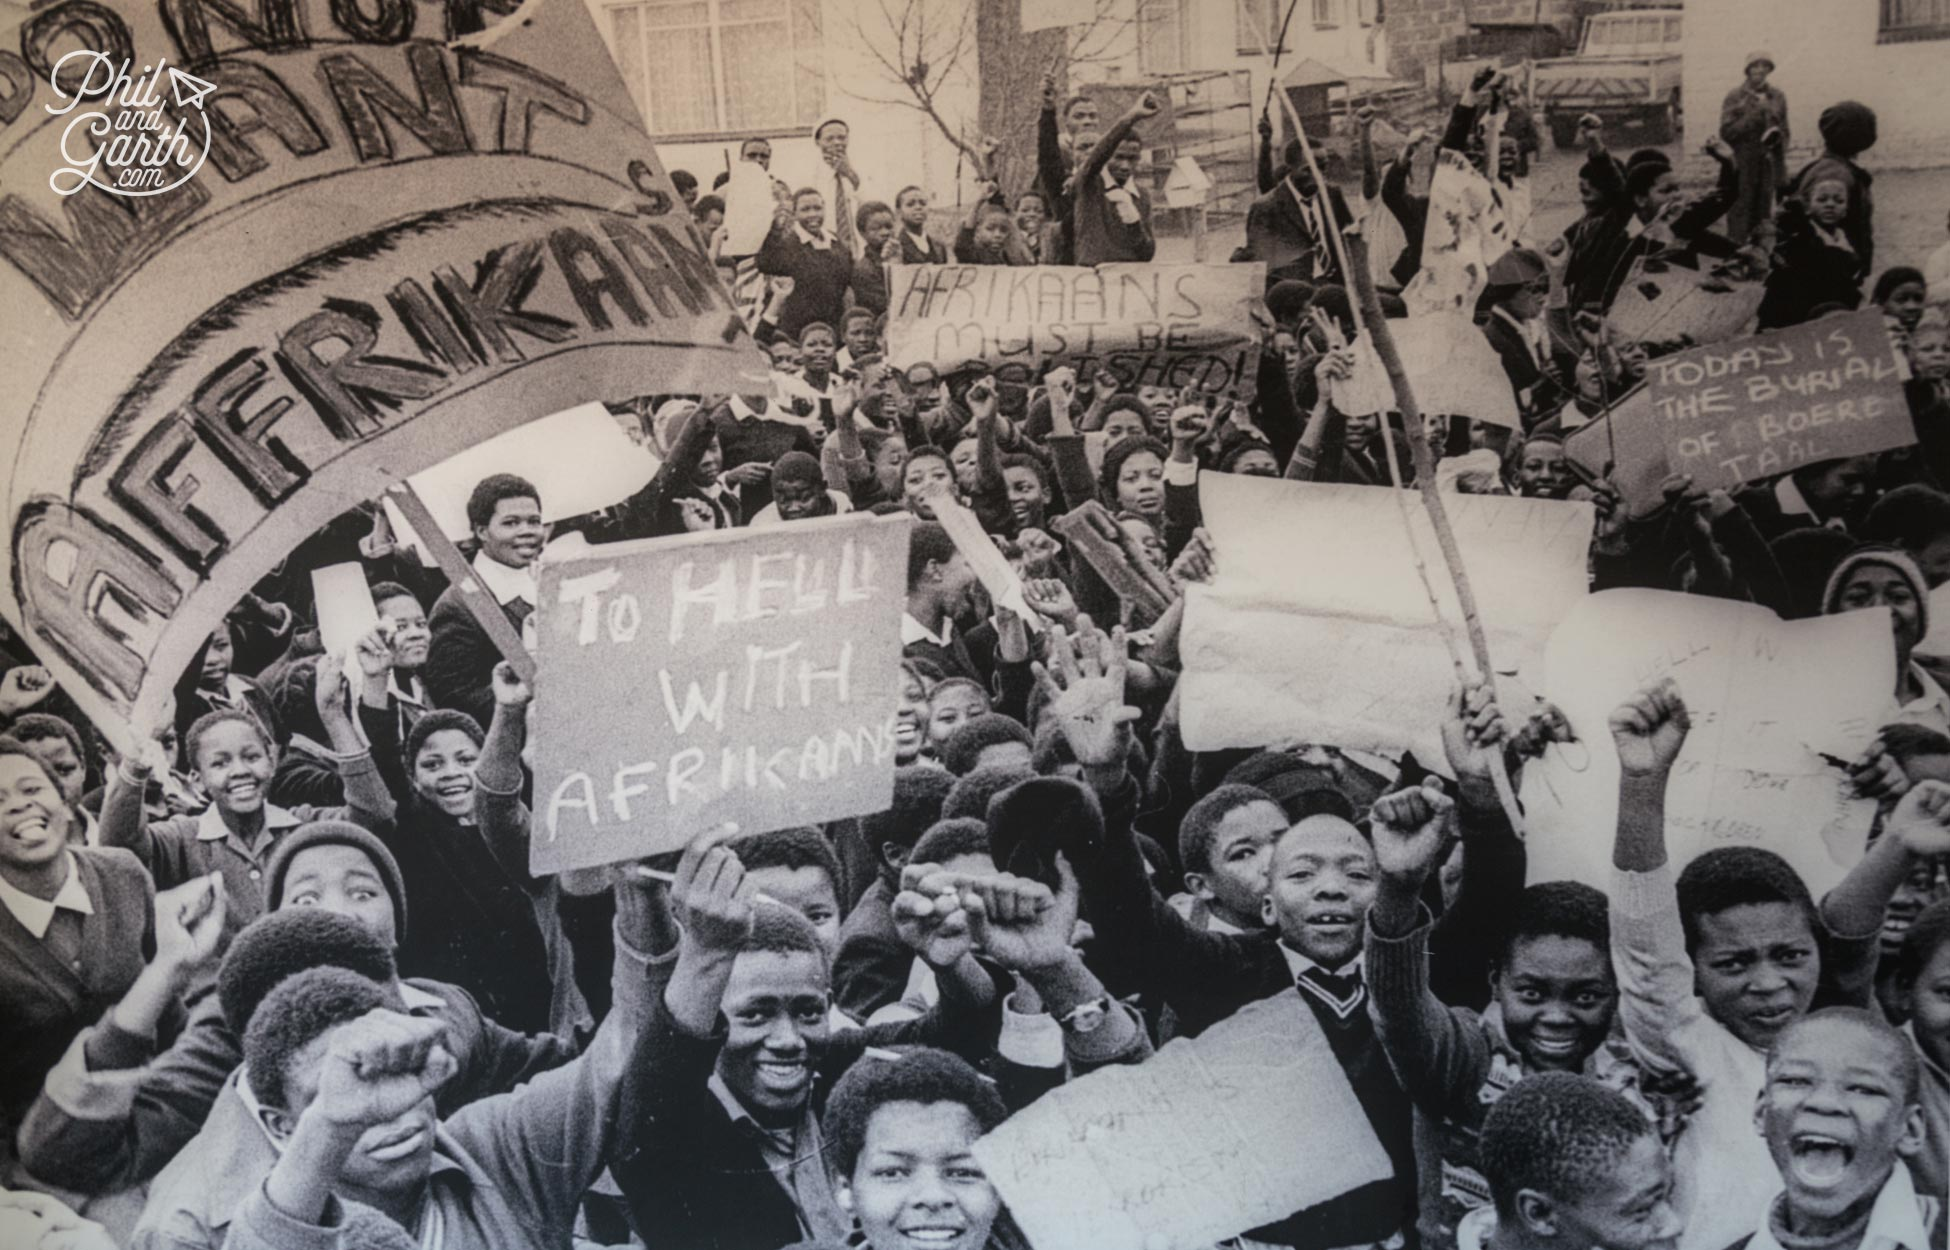 The schoolchildren of Soweto marching on June 16th 1976